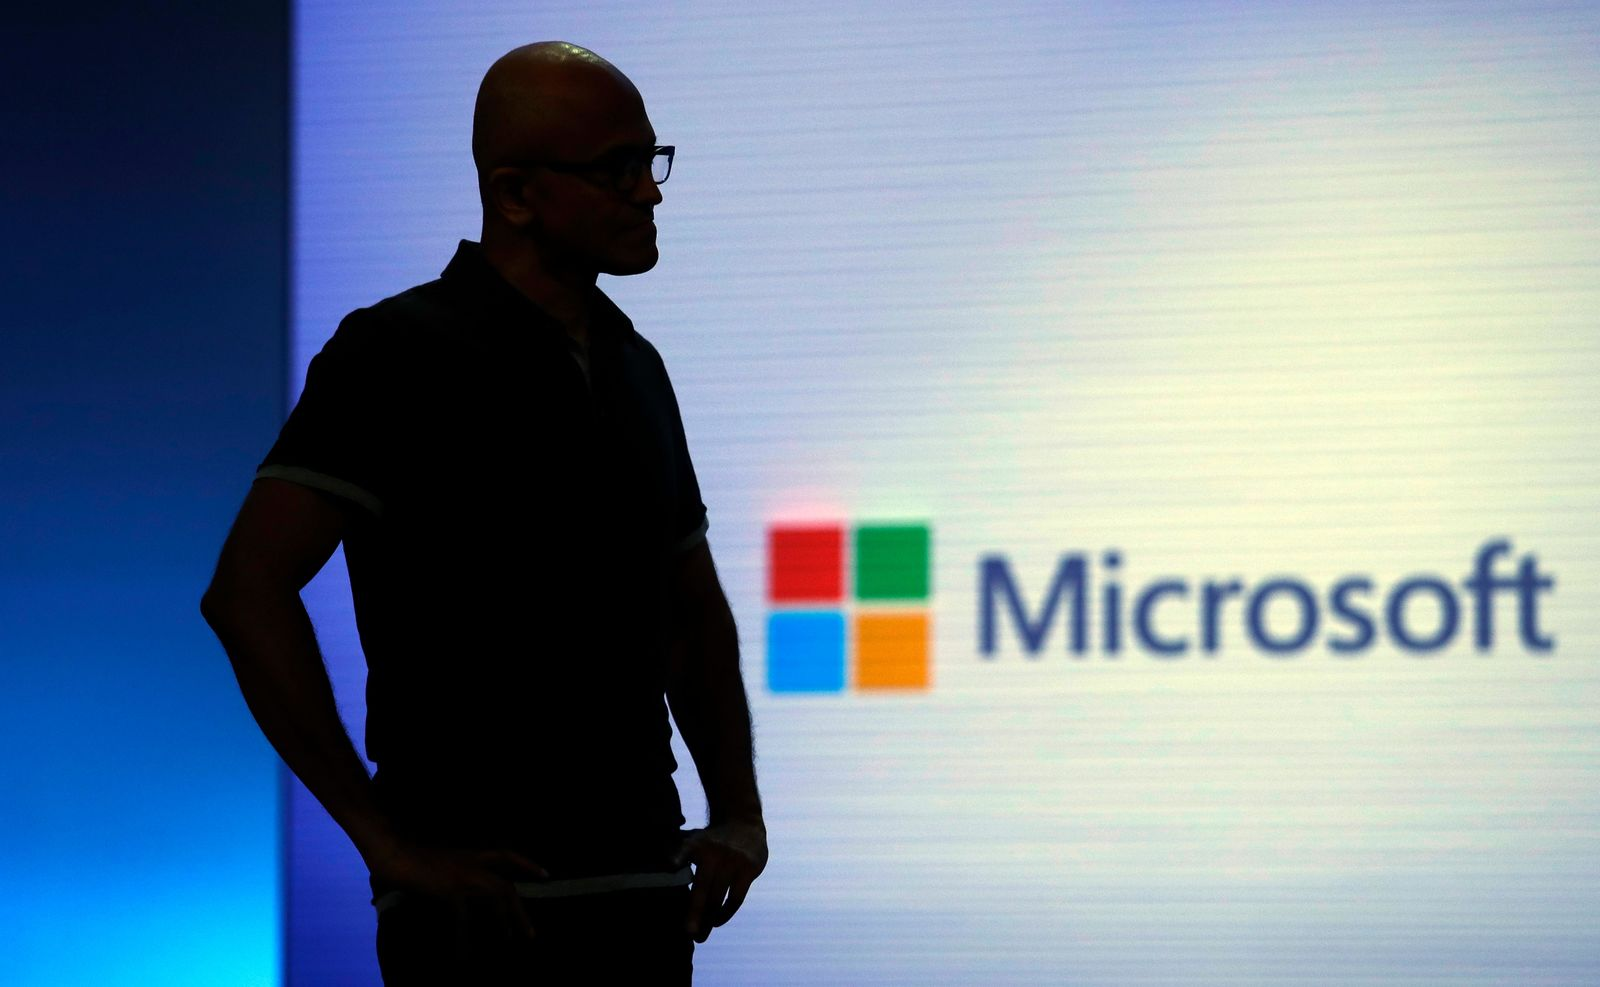 FILE- In this May 7, 2018, file photo Microsoft CEO Satya Nadella looks on during a video as he delivers the keynote address at Build, the company's annual conference for software developers in Seattle. (AP Photo/Elaine Thompson, File)